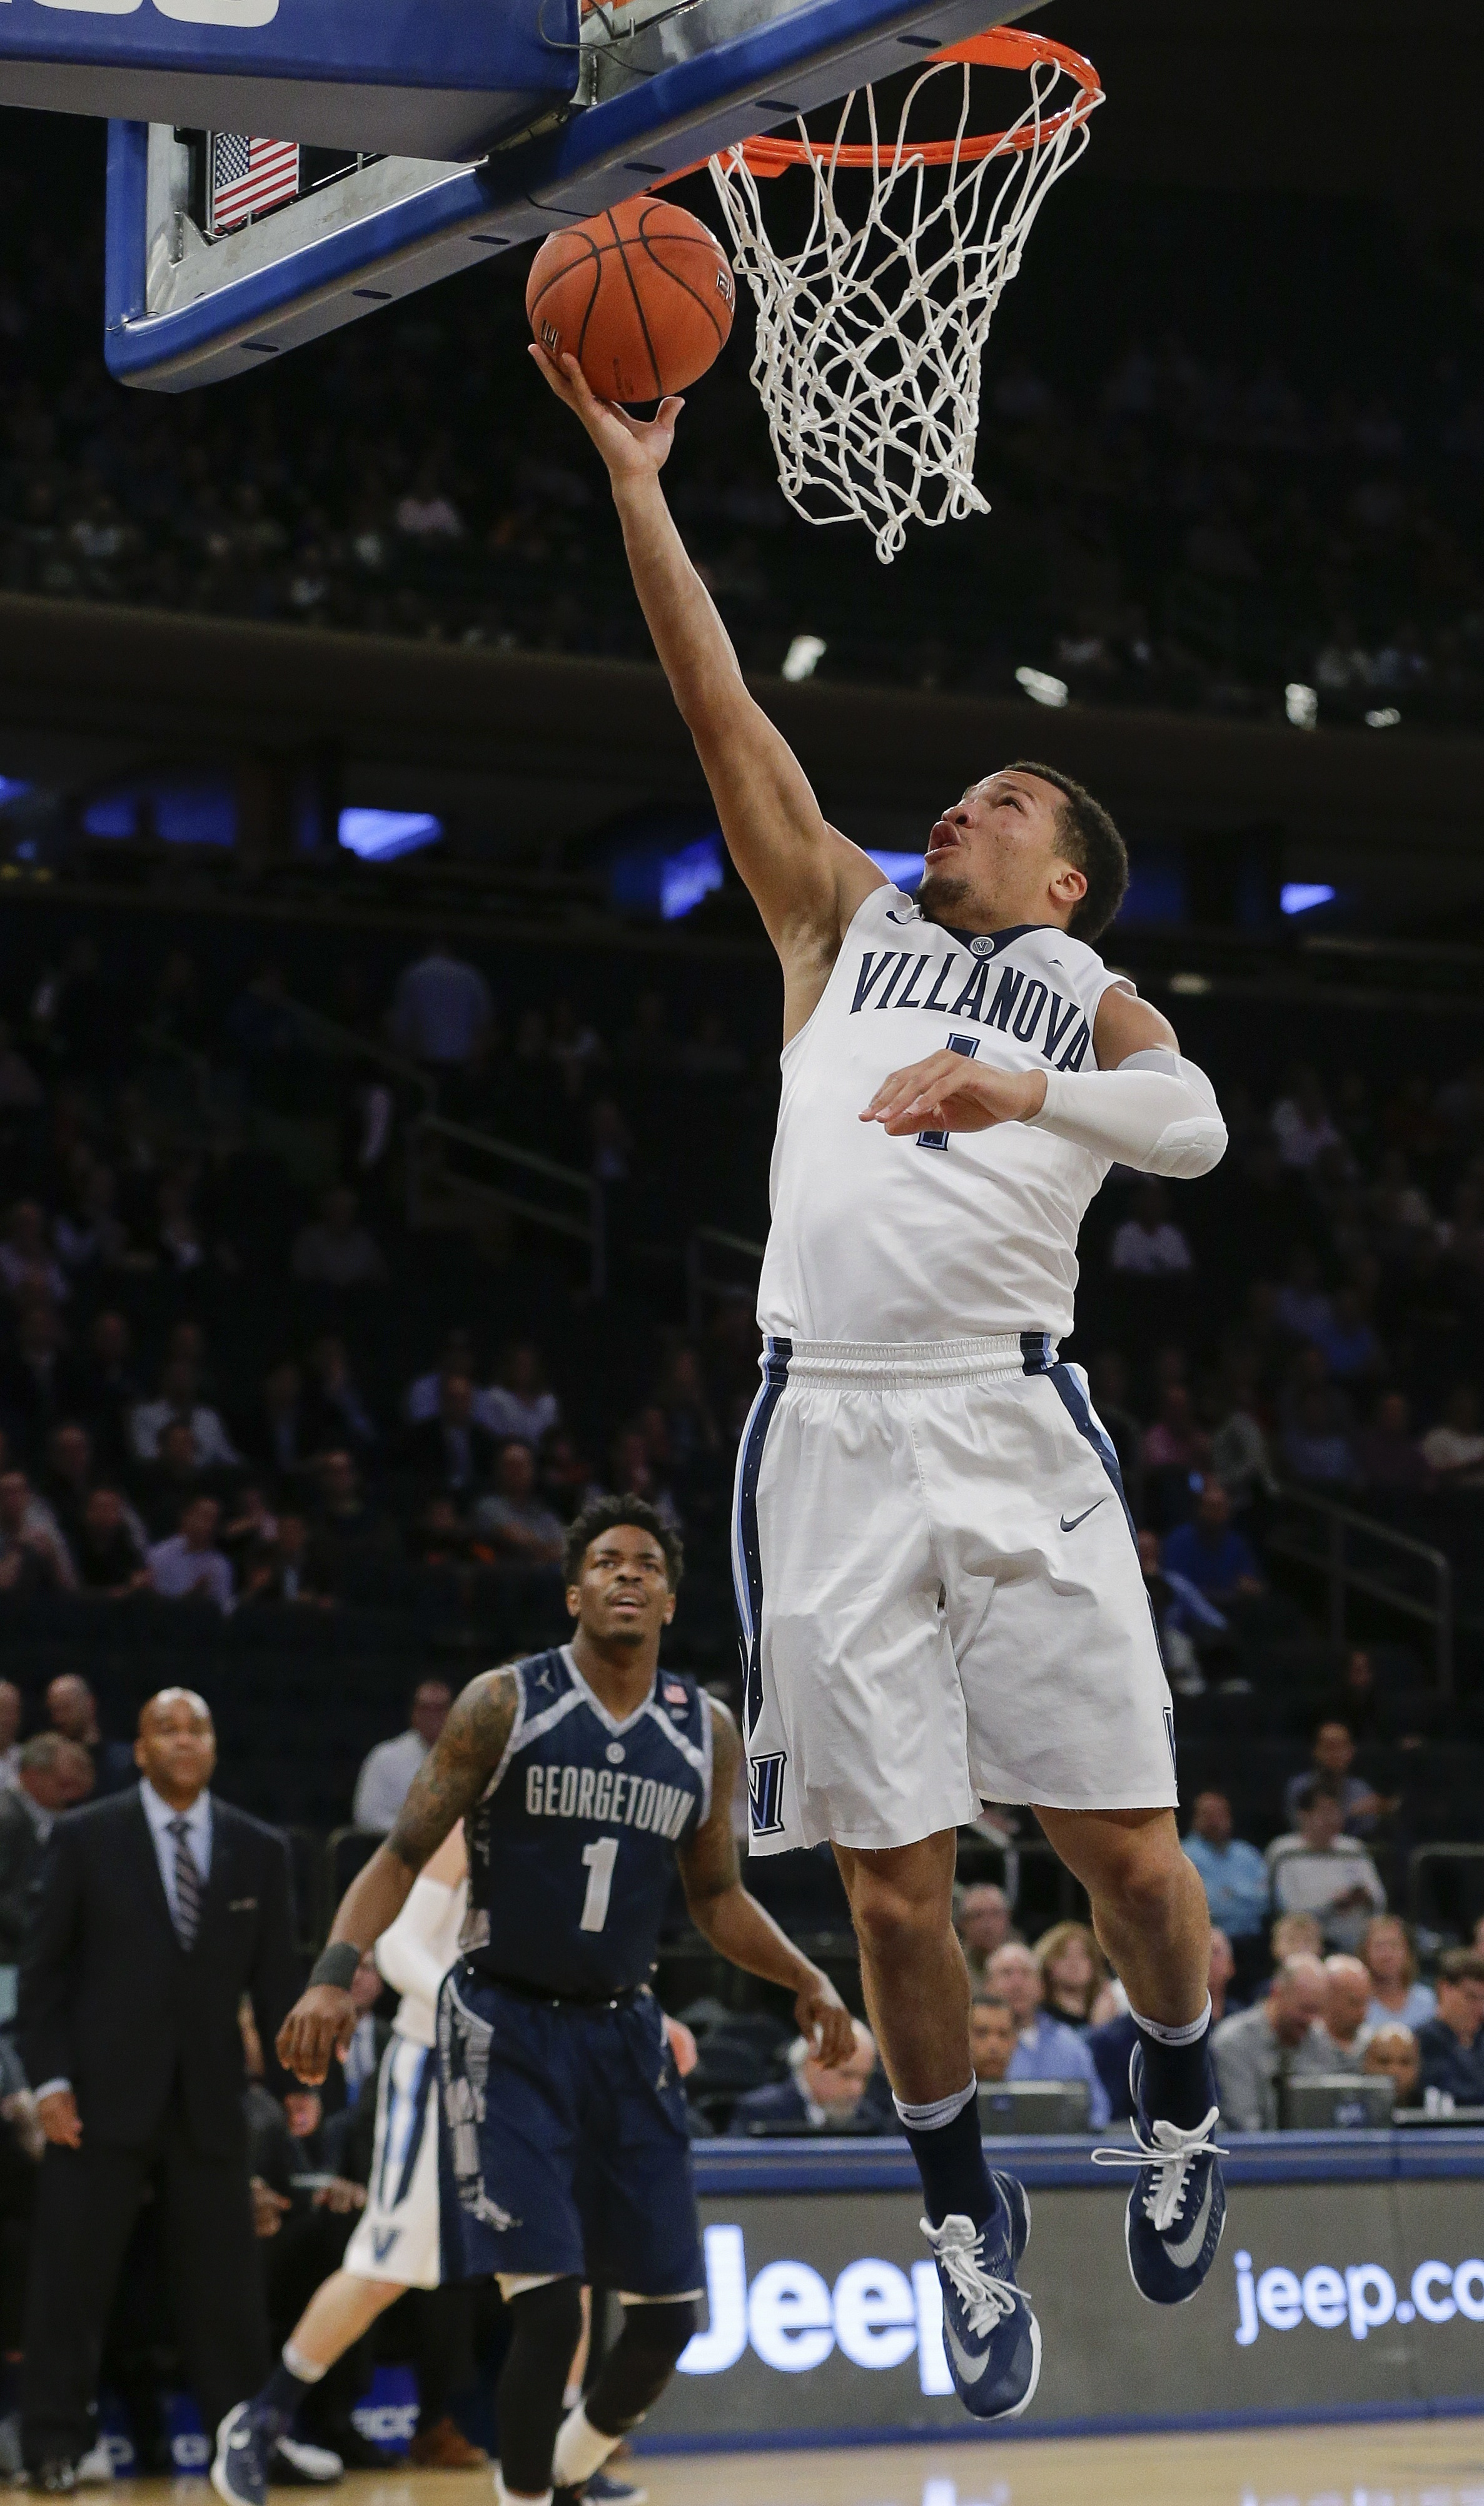 Villanova's Jalen Brunson (1) drives past Georgetown's Tre Campbell (1) during the first half of an NCAA college basketball game during the Big East men's tournament Thursday, March 10, 2016, in New York. (AP Photo/Frank Franklin II)